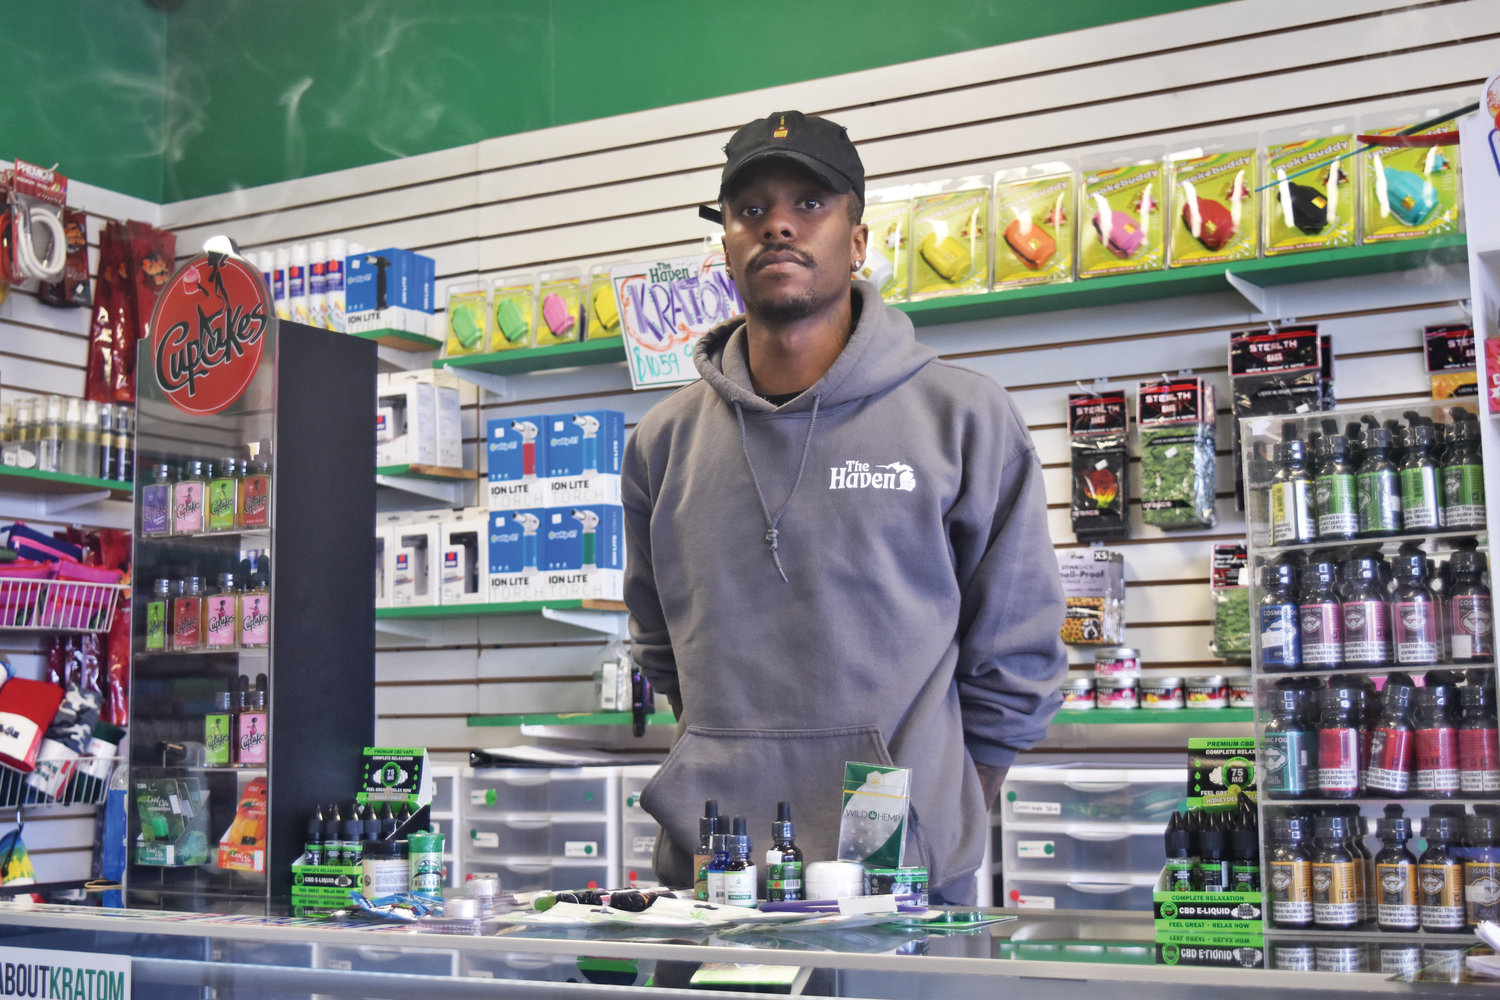 Trepidation and hope with CBD oil craze in Lansing | City Pulse